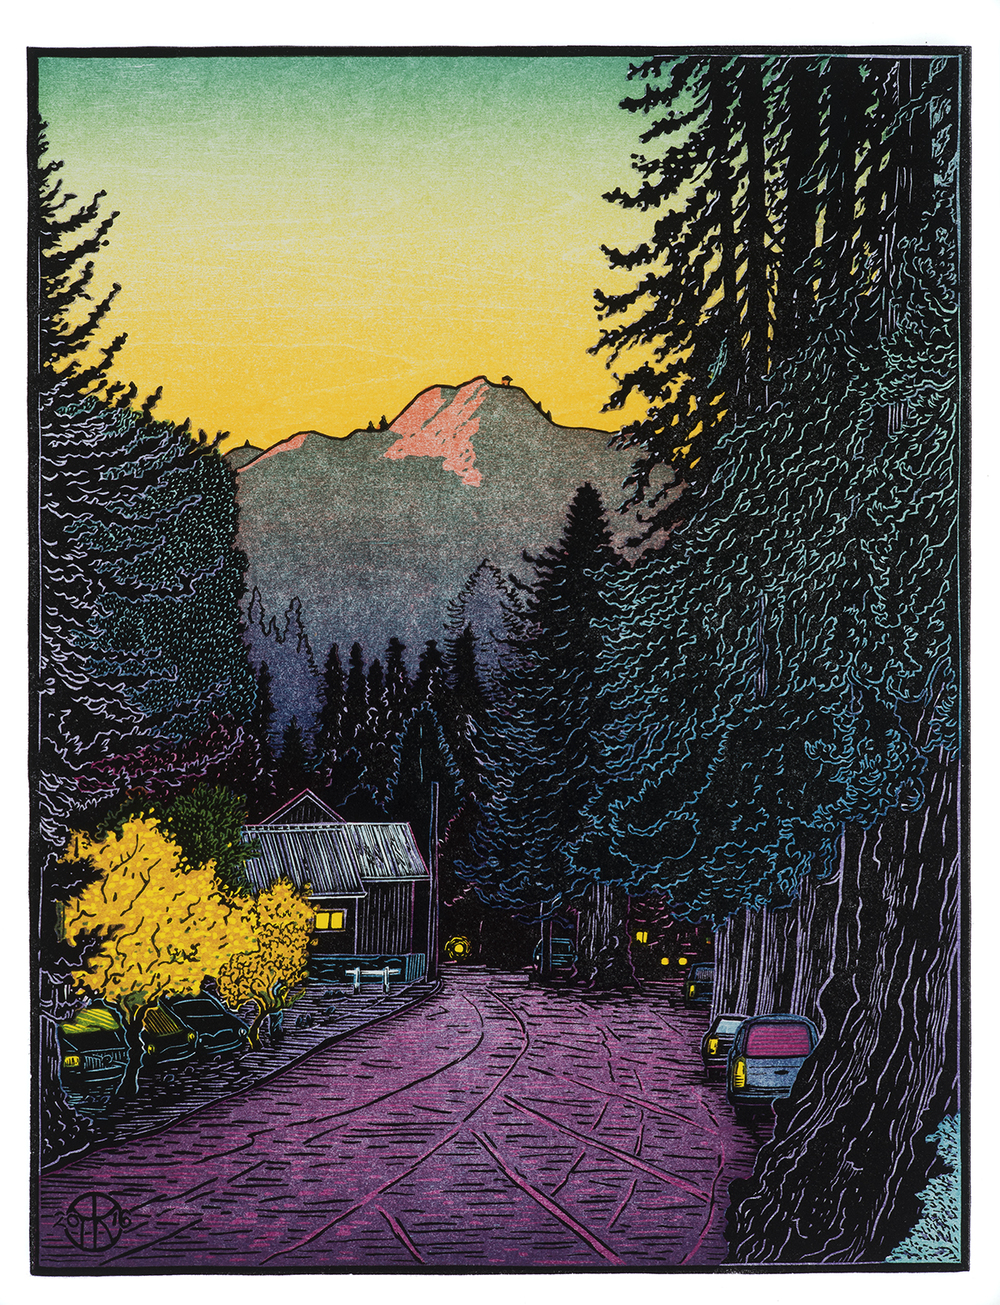 """Mill Valley Lumber"": 8 color-layer multi-block reduction cut completed spring 2016. The scene is on Miller Ave. in Mill Valley, looking towards the old Lumber Company buildings with Mt. Tamalpais catching the evening light in late November. This image was used for the Mill Valley Fall Art Festival's 60th Anniversary poster in 2016."